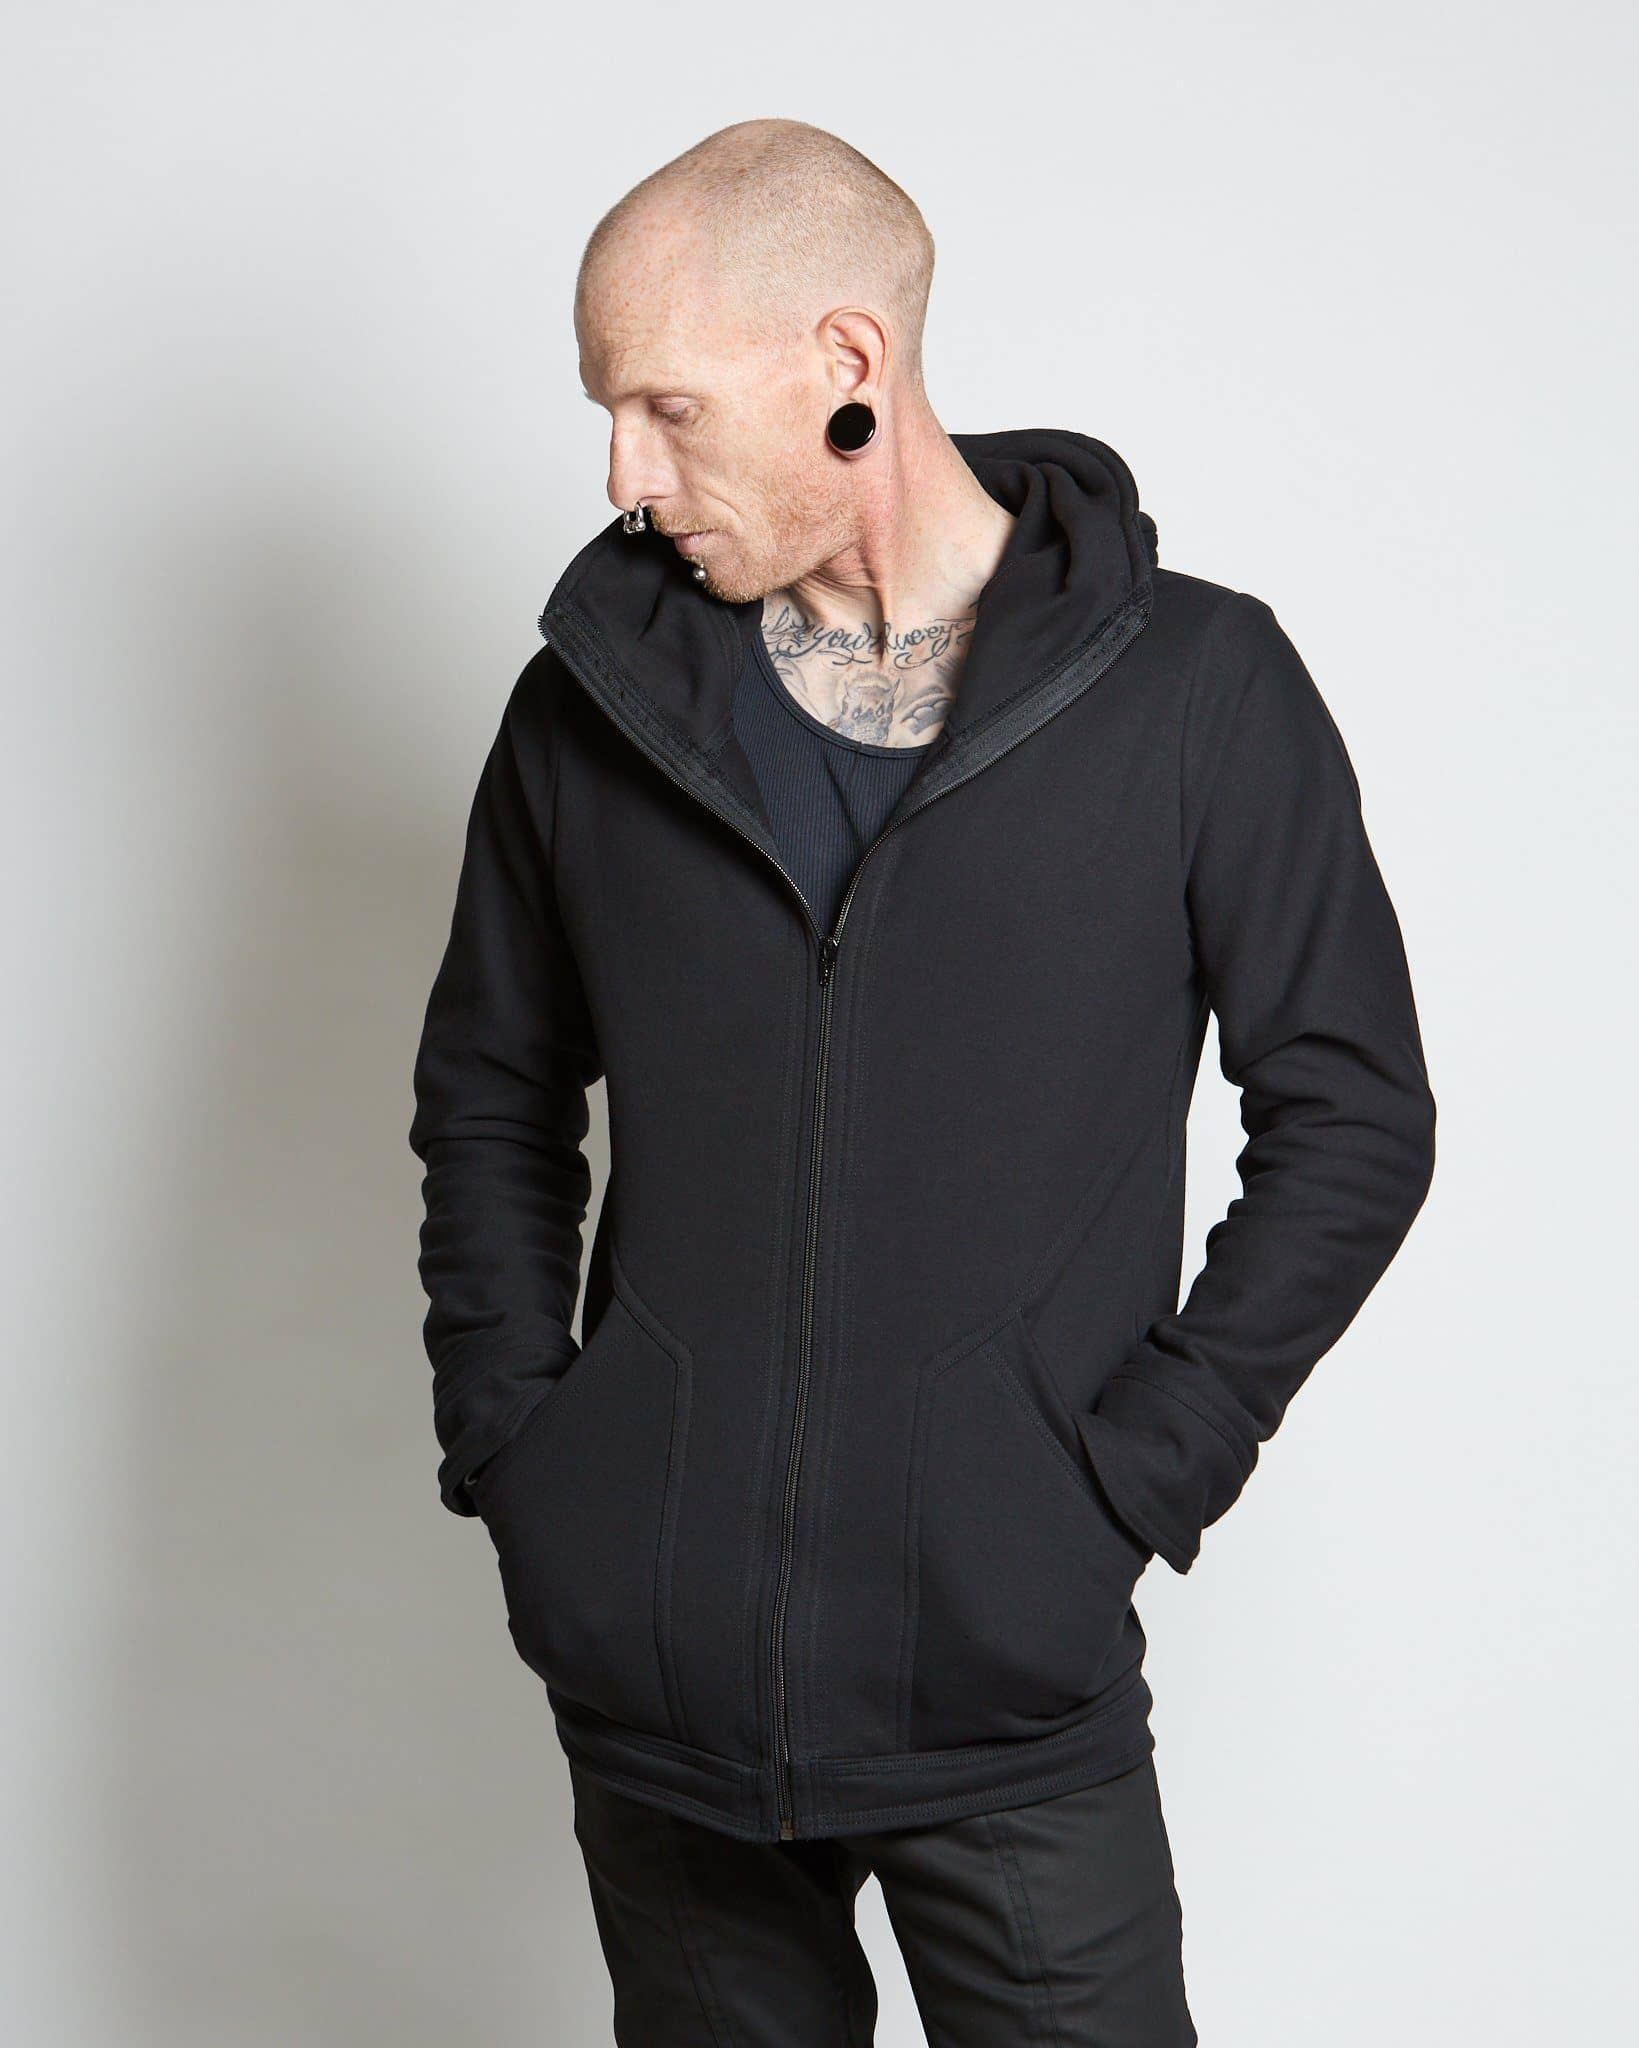 100% cotton mens hoodie handmade in the USA